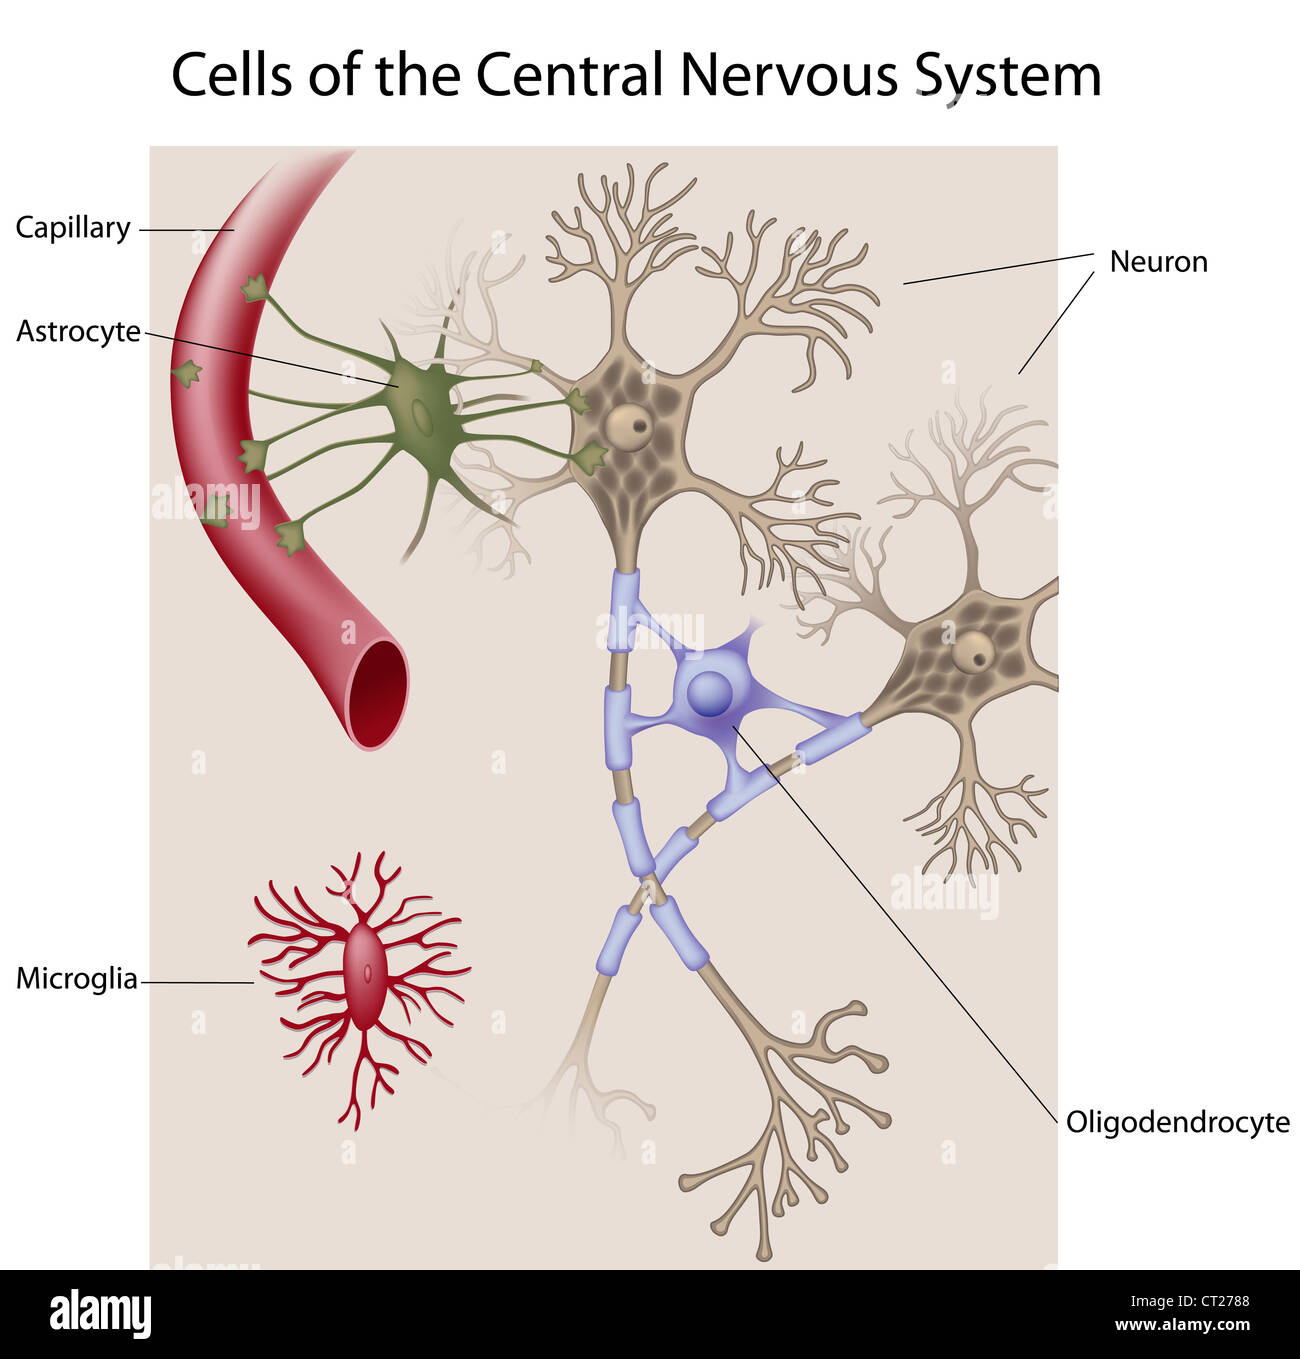 Cells Of The Central Nervous System Stock Photo 49222104 Alamy